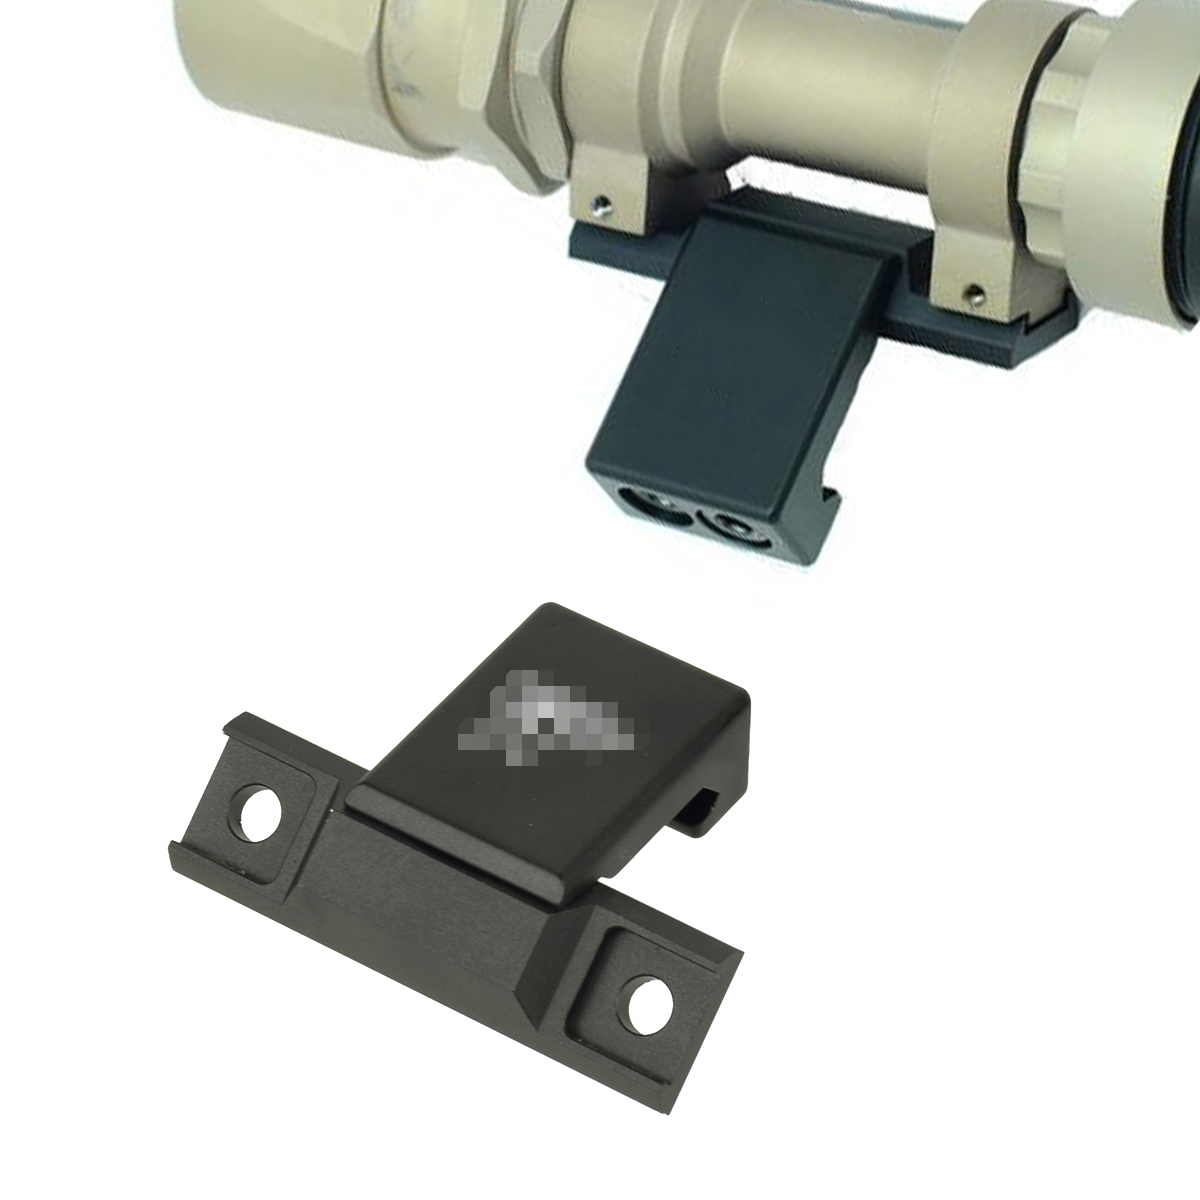 Weapon Light Offset Mount for Surefir M951 M620V Series Mounted on Picatinny Weaver Rail